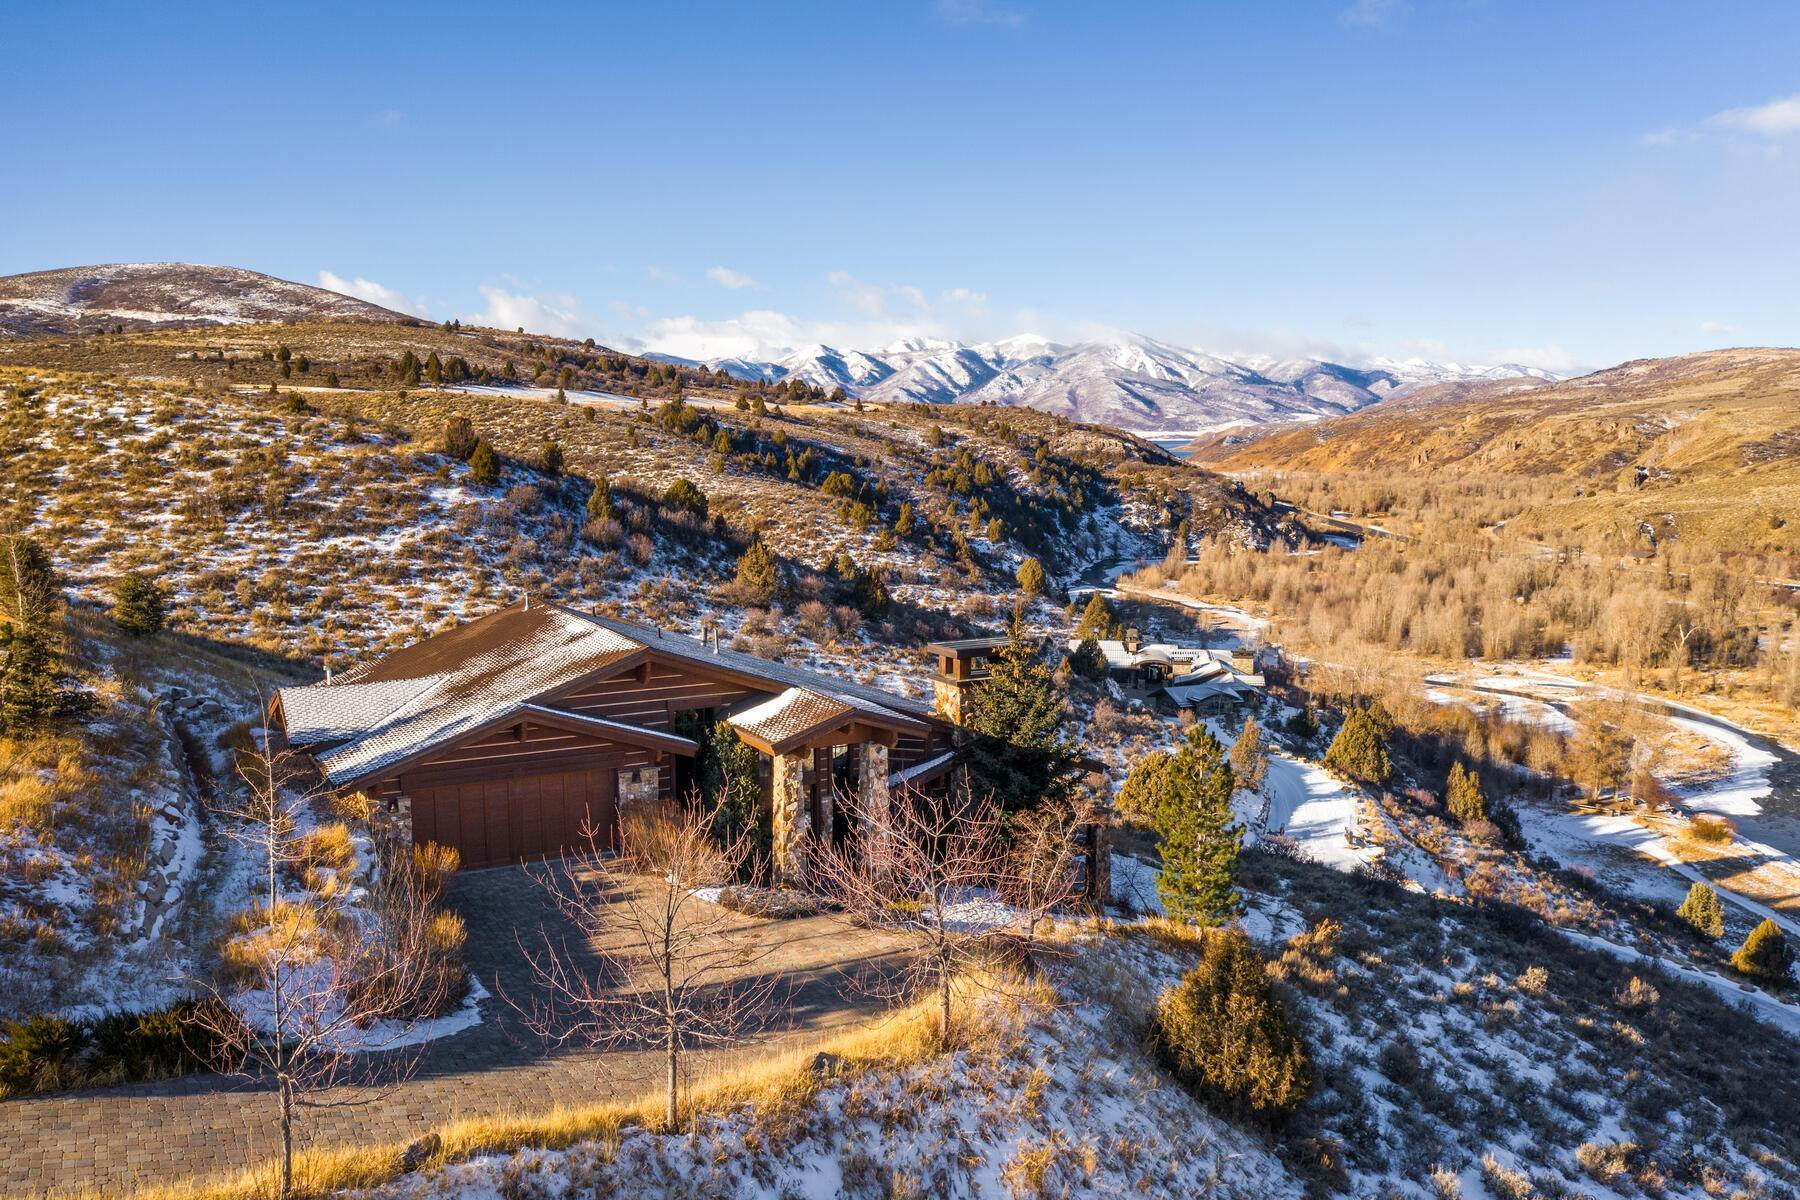 Single Family Homes for Sale at Iconic Victory Ranch Home With Stunning River Views 7409 N Caddis Dr Heber City, Utah 84032 United States